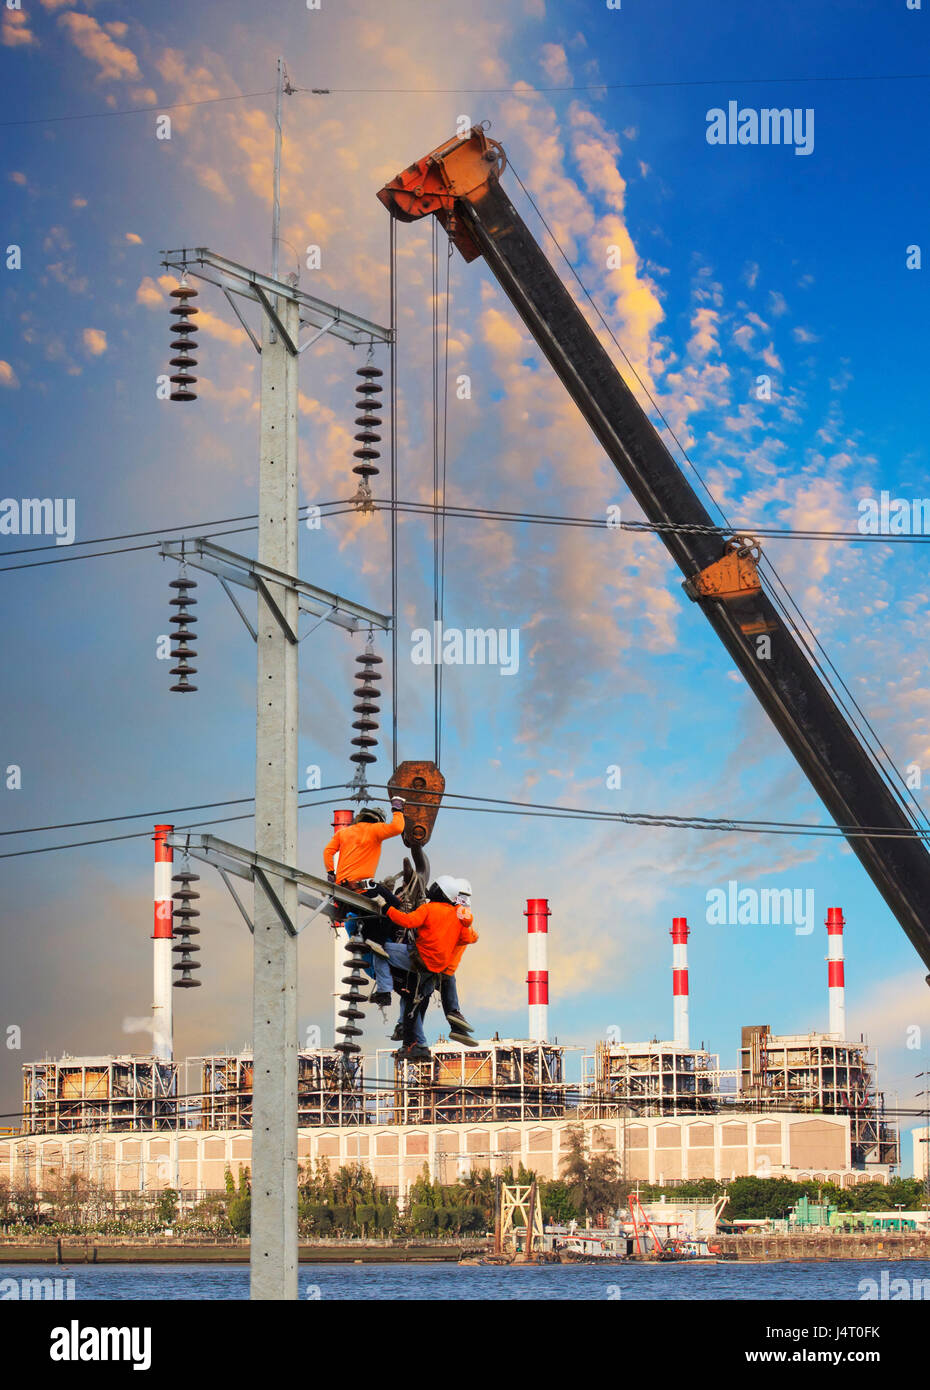 Stock Photo   Electrician Worker Working On High Voltage Electric Pole With  Crane Against Factory Building Background